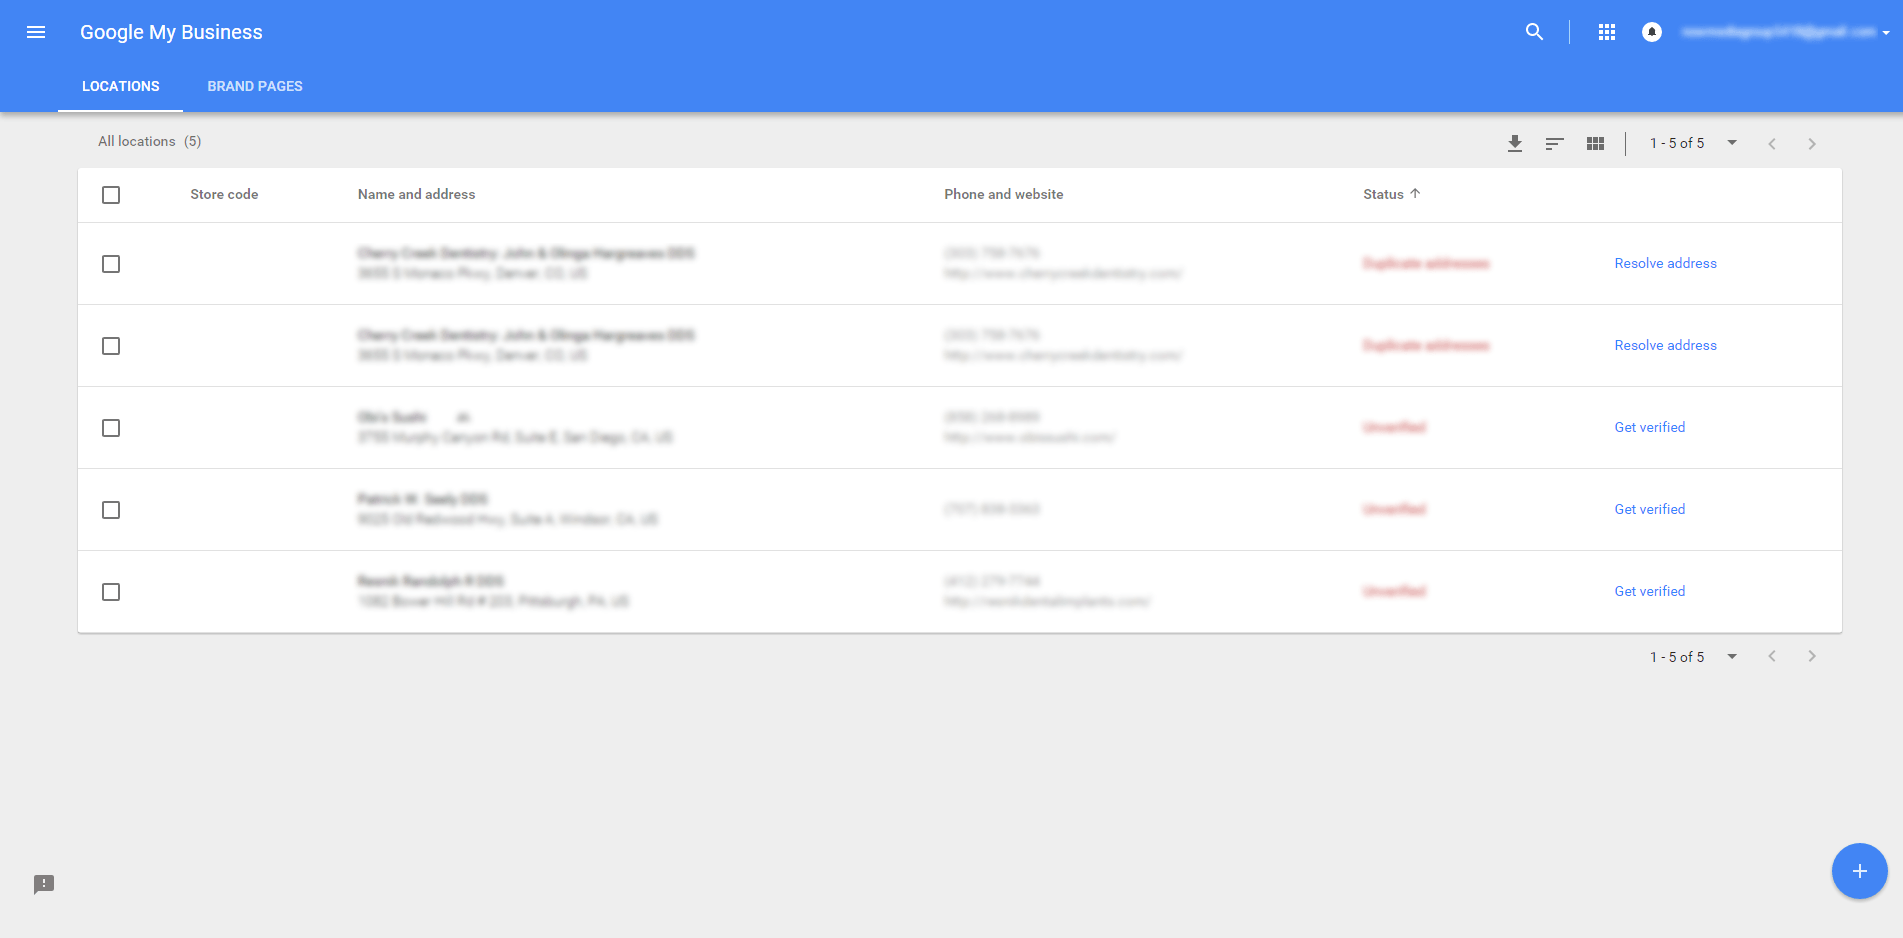 What the Google My Business manager view looks like in list view.